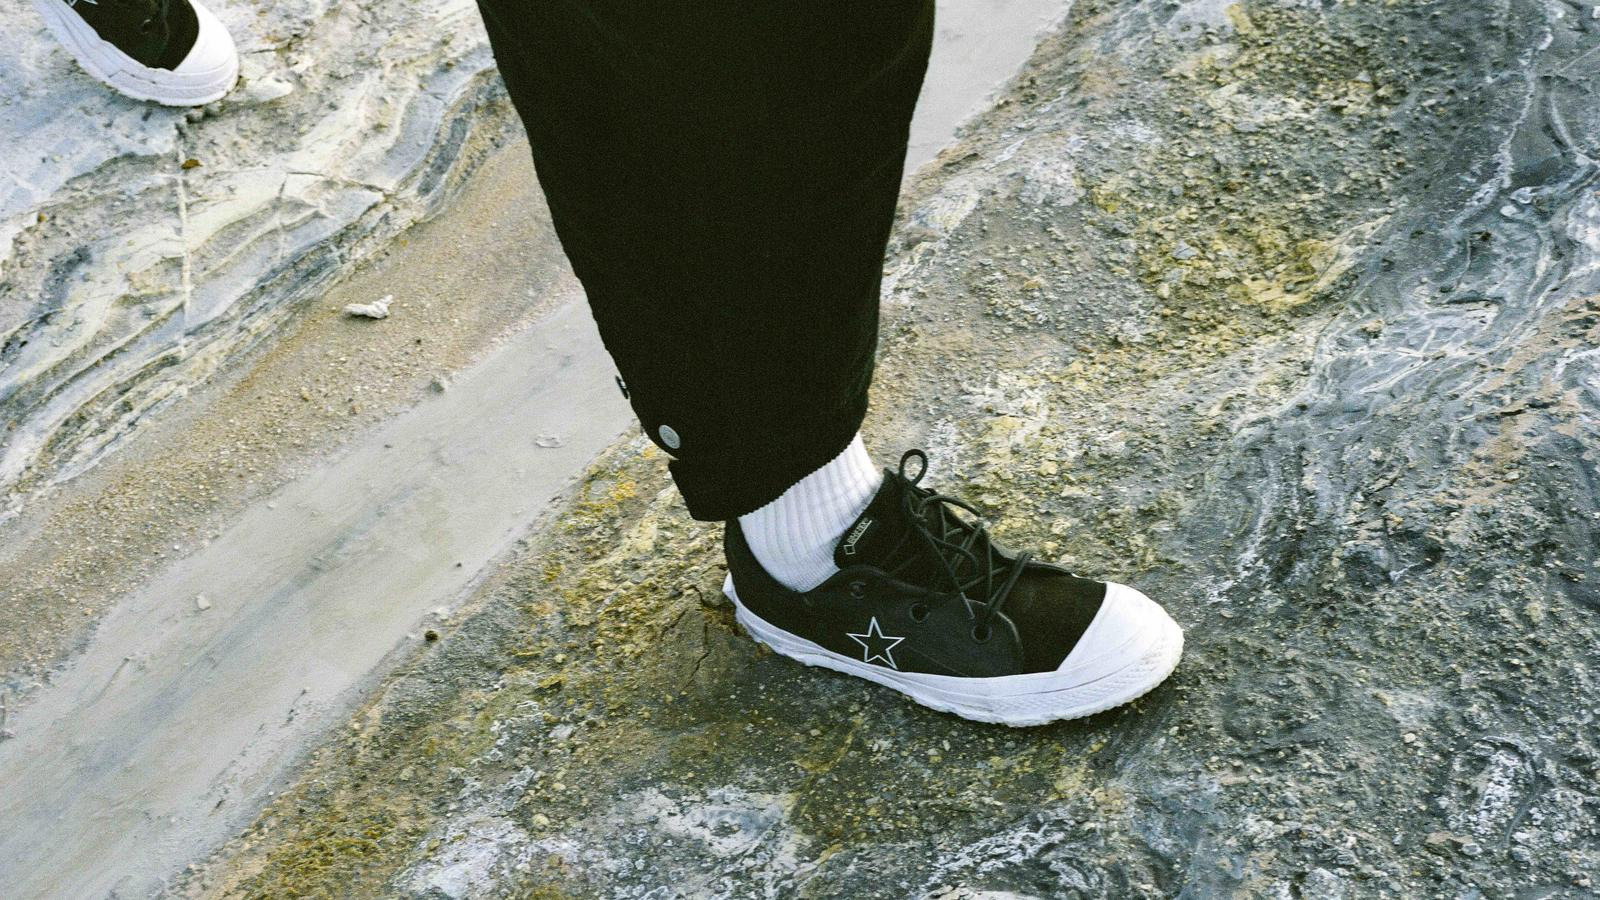 New Converse Mountain Club Capsule Delivers Style and Utility - Nike ... 4d6b4592b